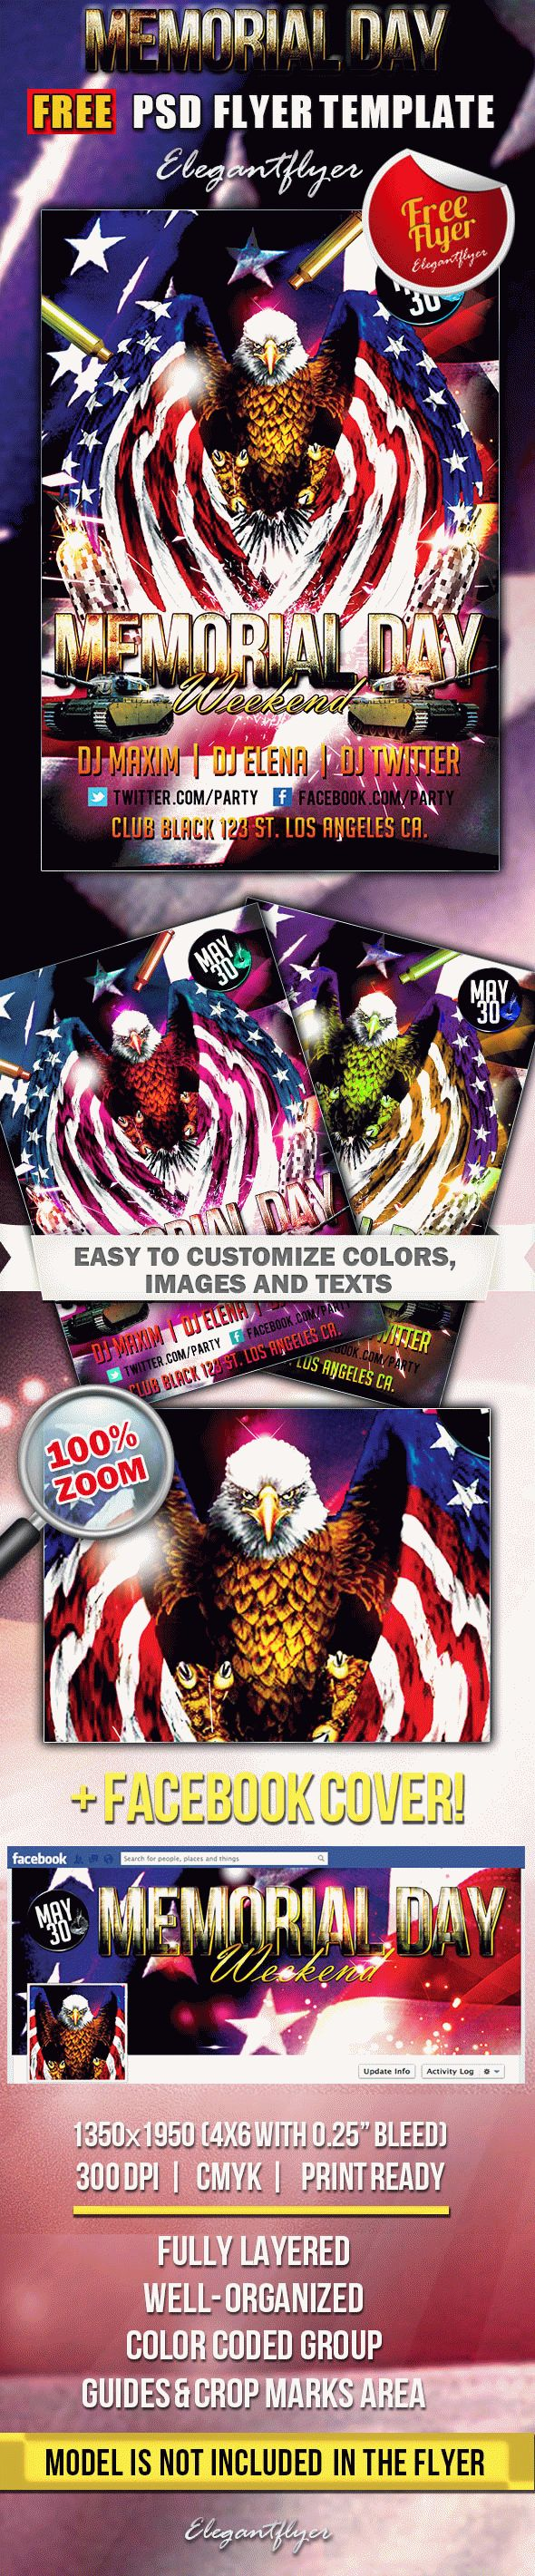 Memorial Day Weekend – Free Flyer PSD Template + Facebook Cover